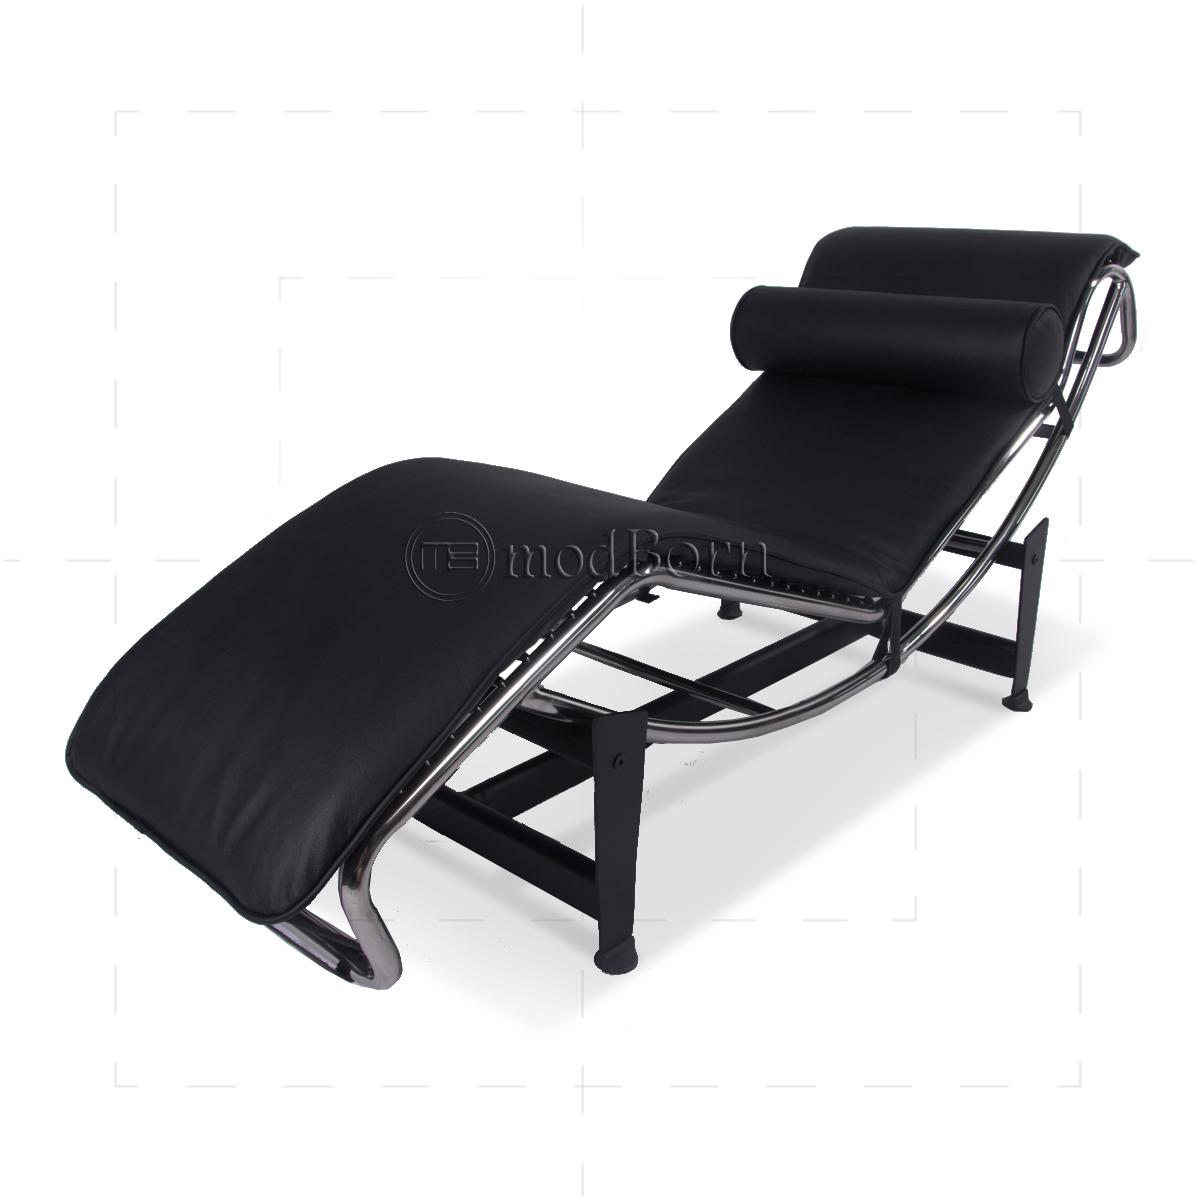 Le corbusier style lc4 chaise longue black leather replica for Chaise longue le corbusier ebay